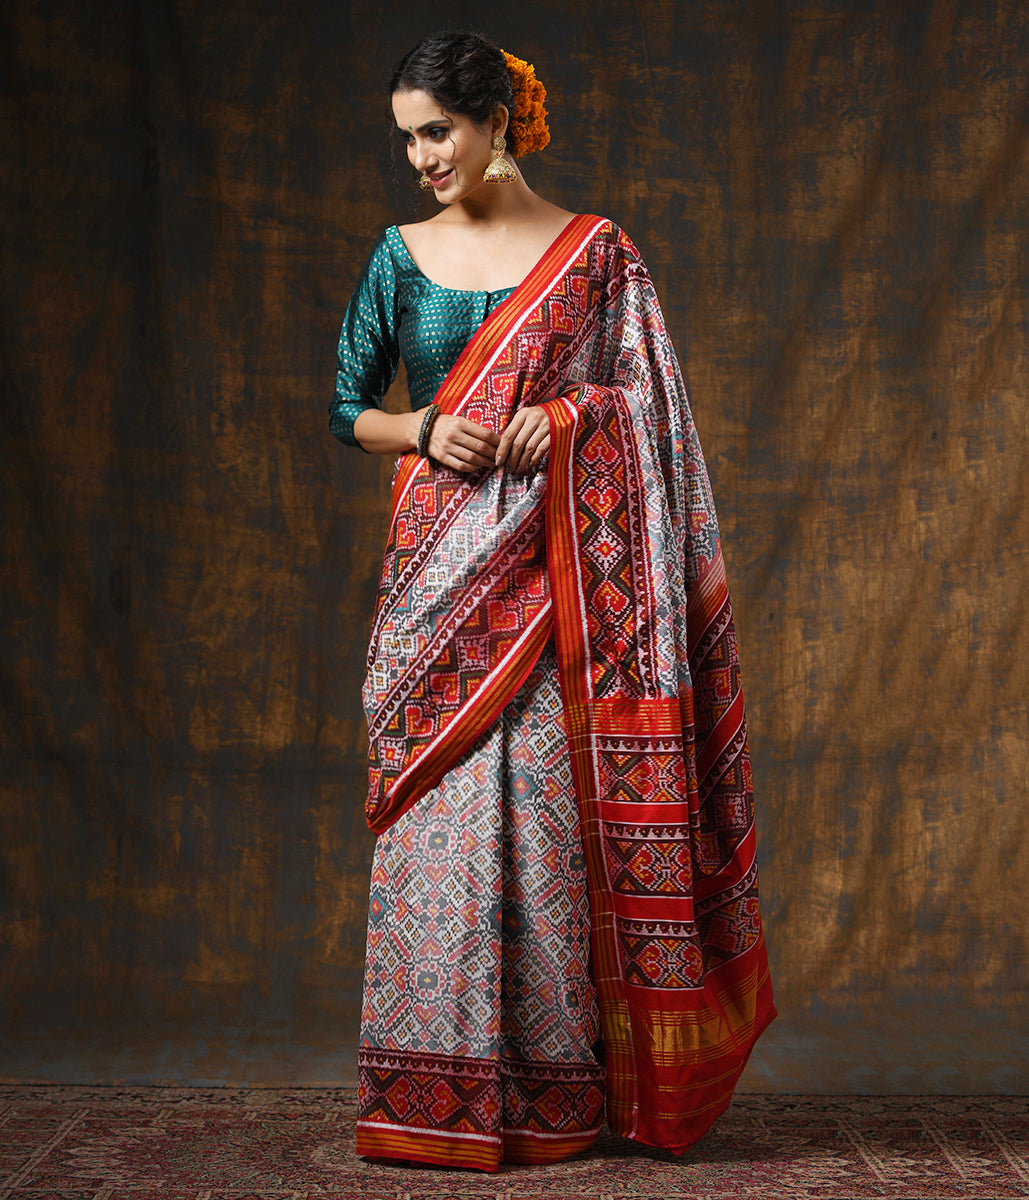 Handwoven White and Red Gujarat Patola Saree